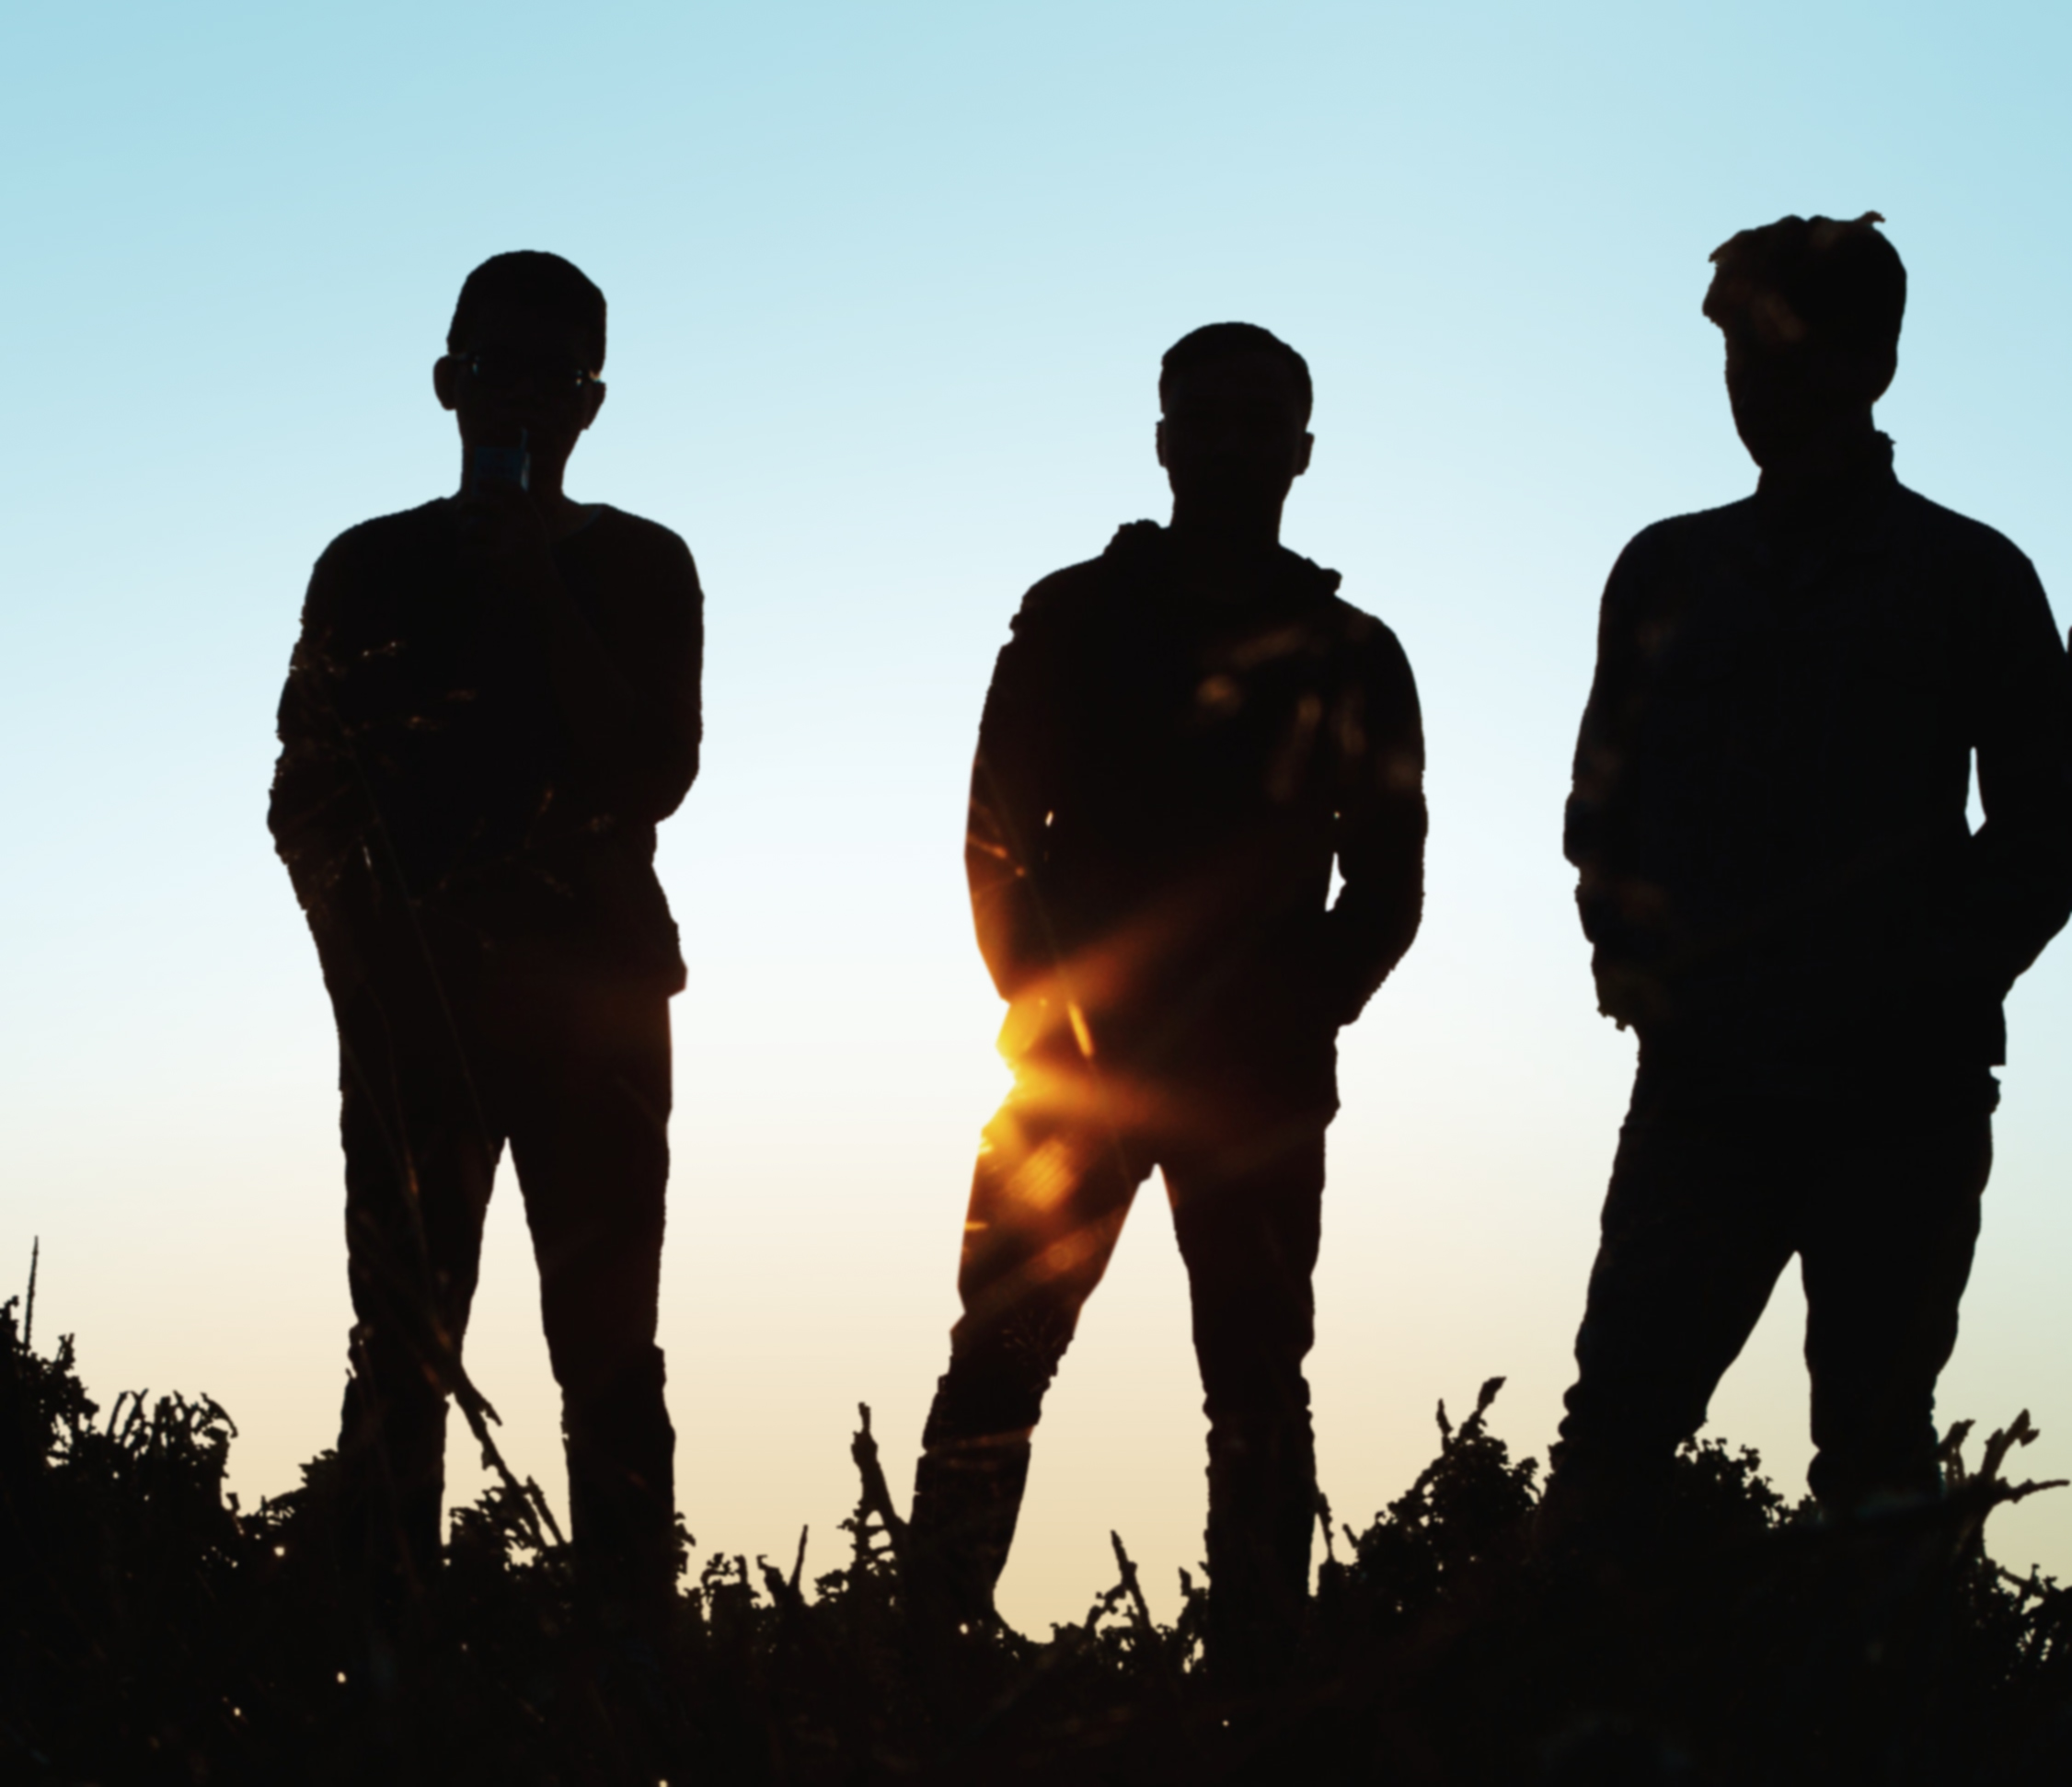 silhouette-group-of-people-standing-on-grass-field-1250346-blue